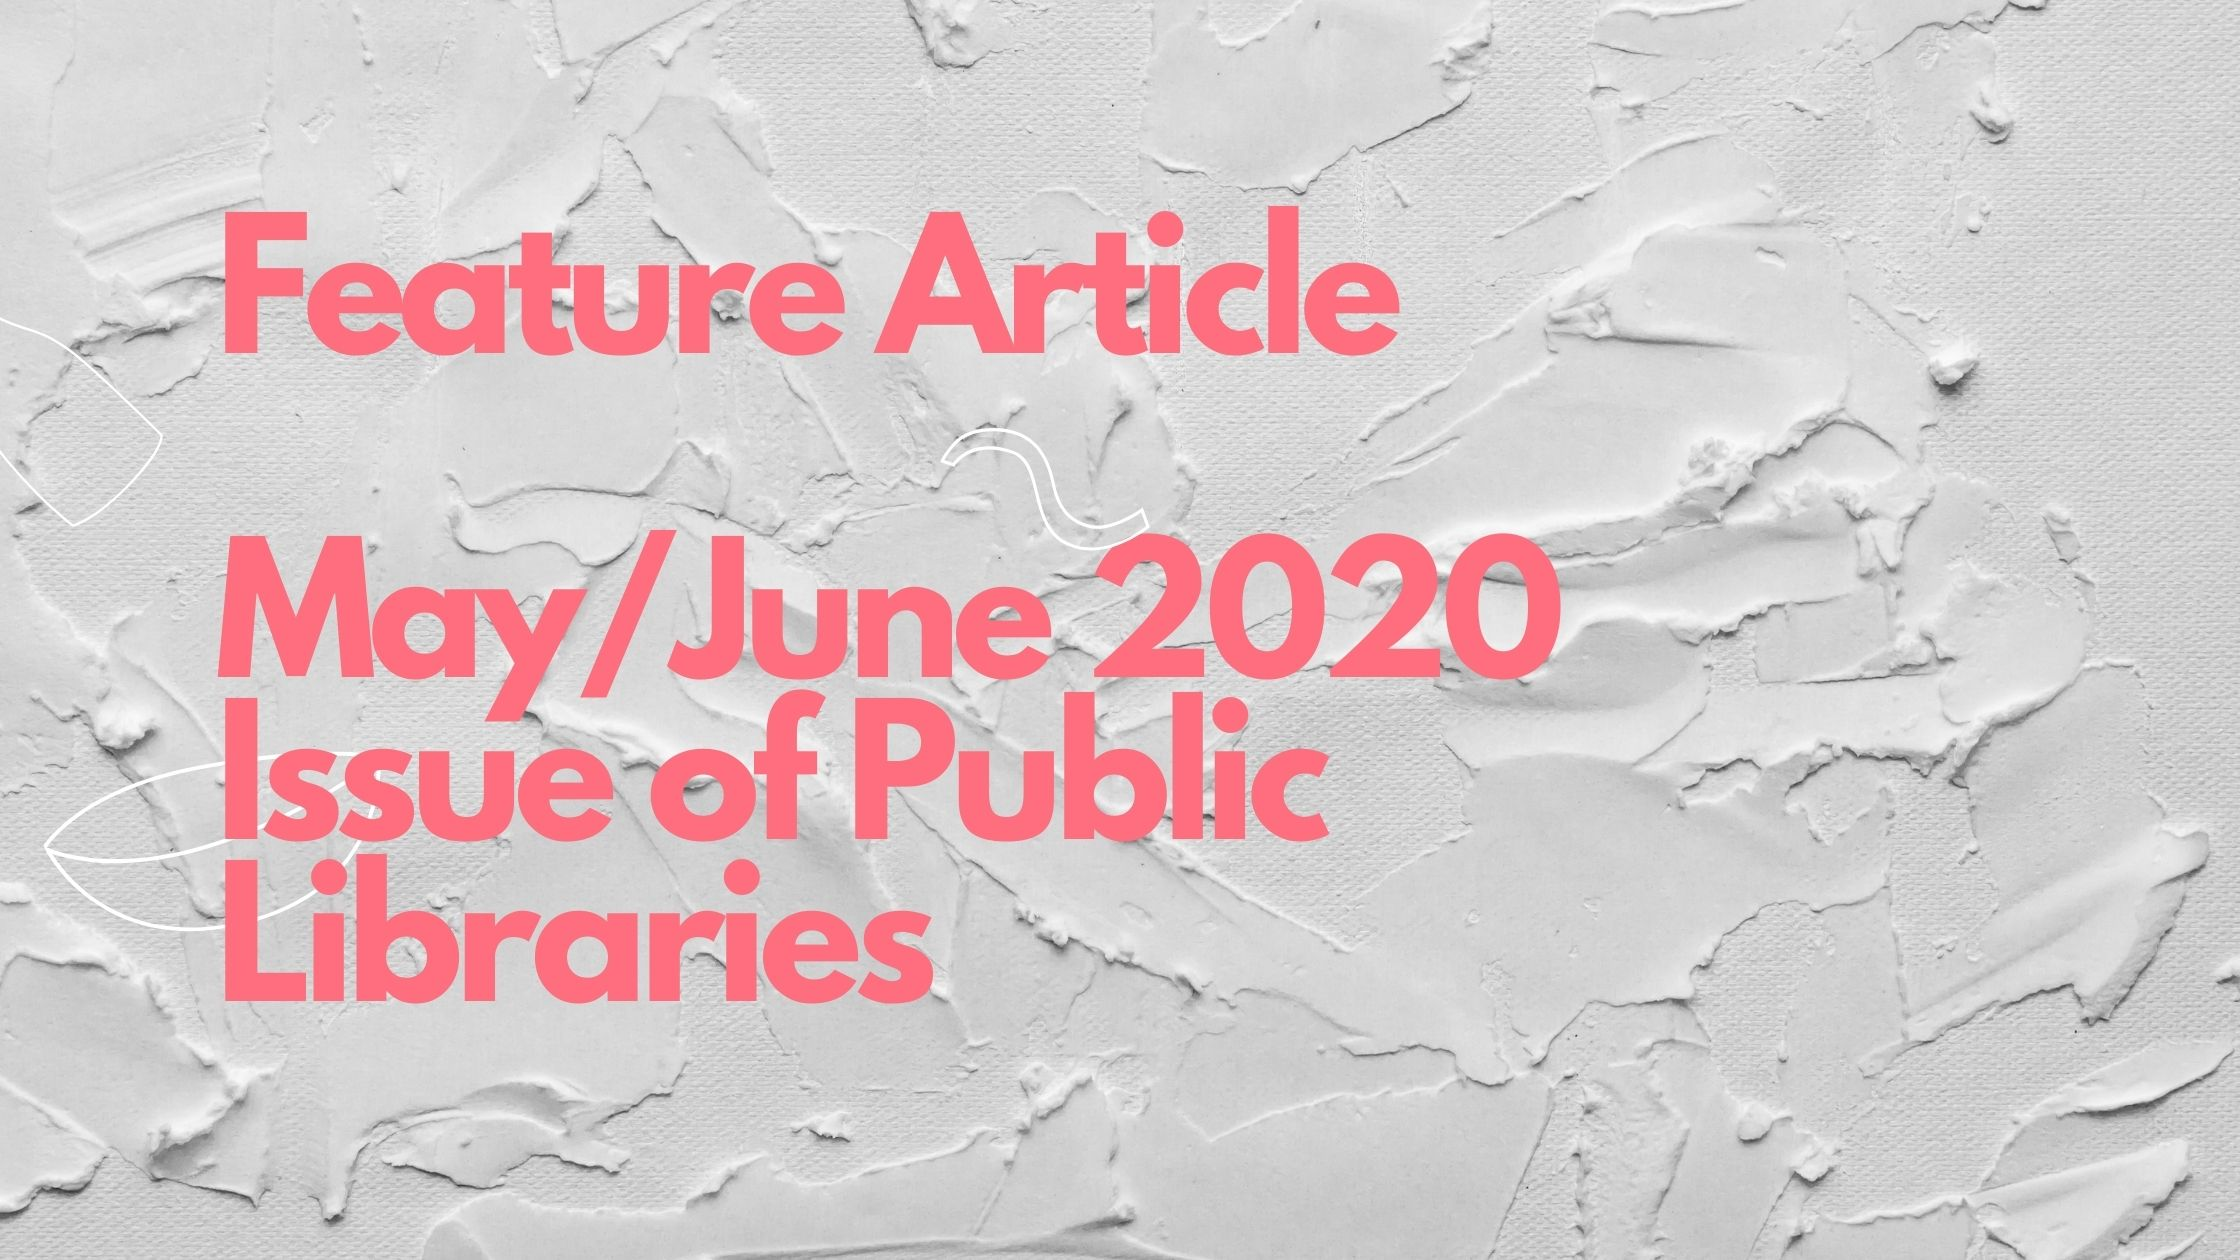 Feature Article May/June 2020 Issue of Public Libraries